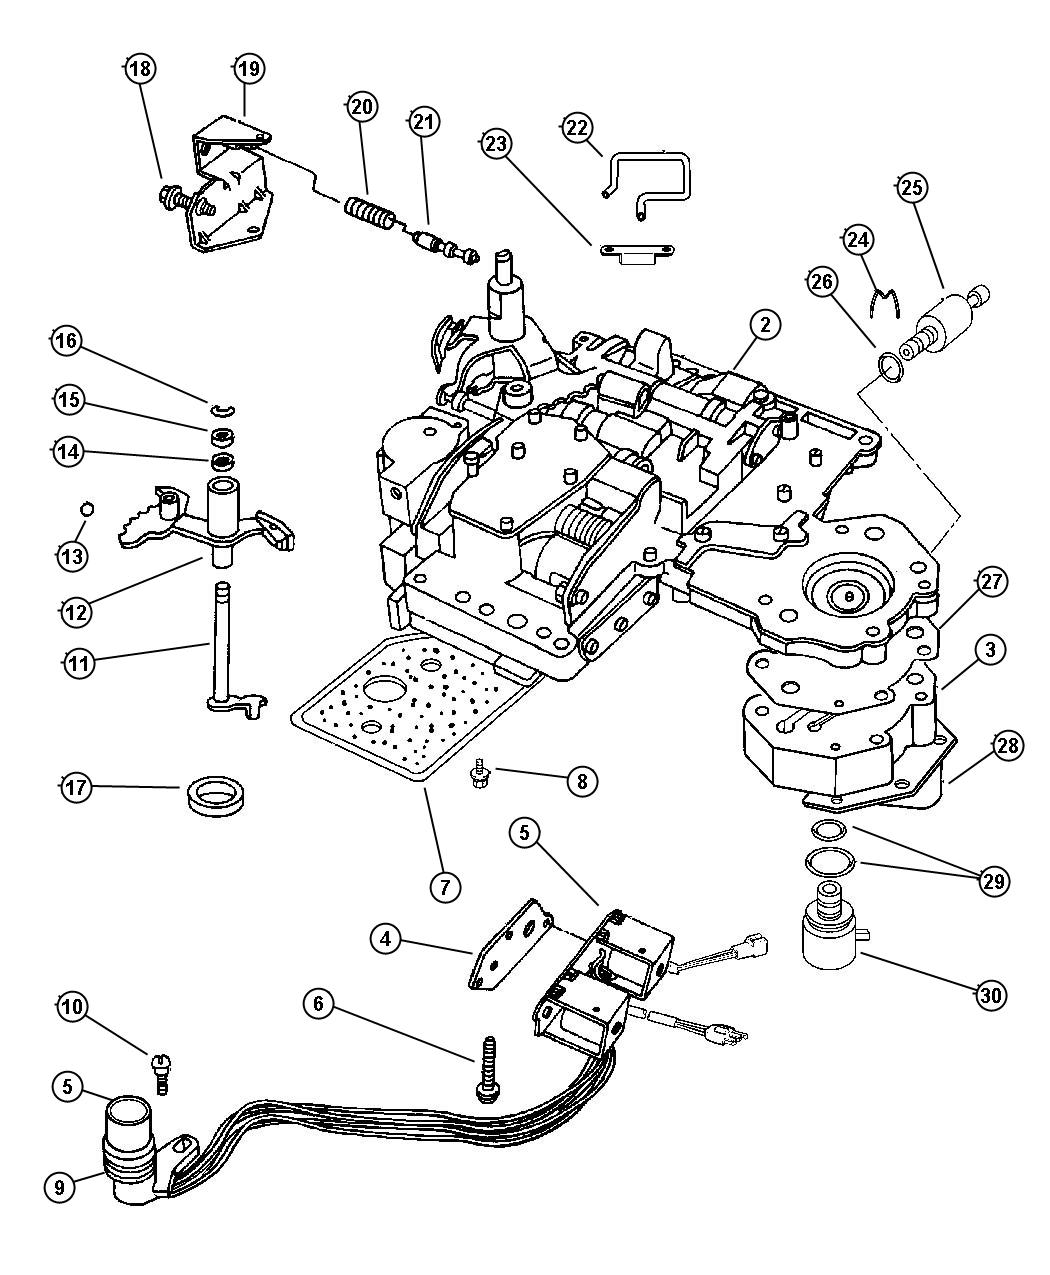 dodge ram 46re wiring diagram 47rh transmission diagram